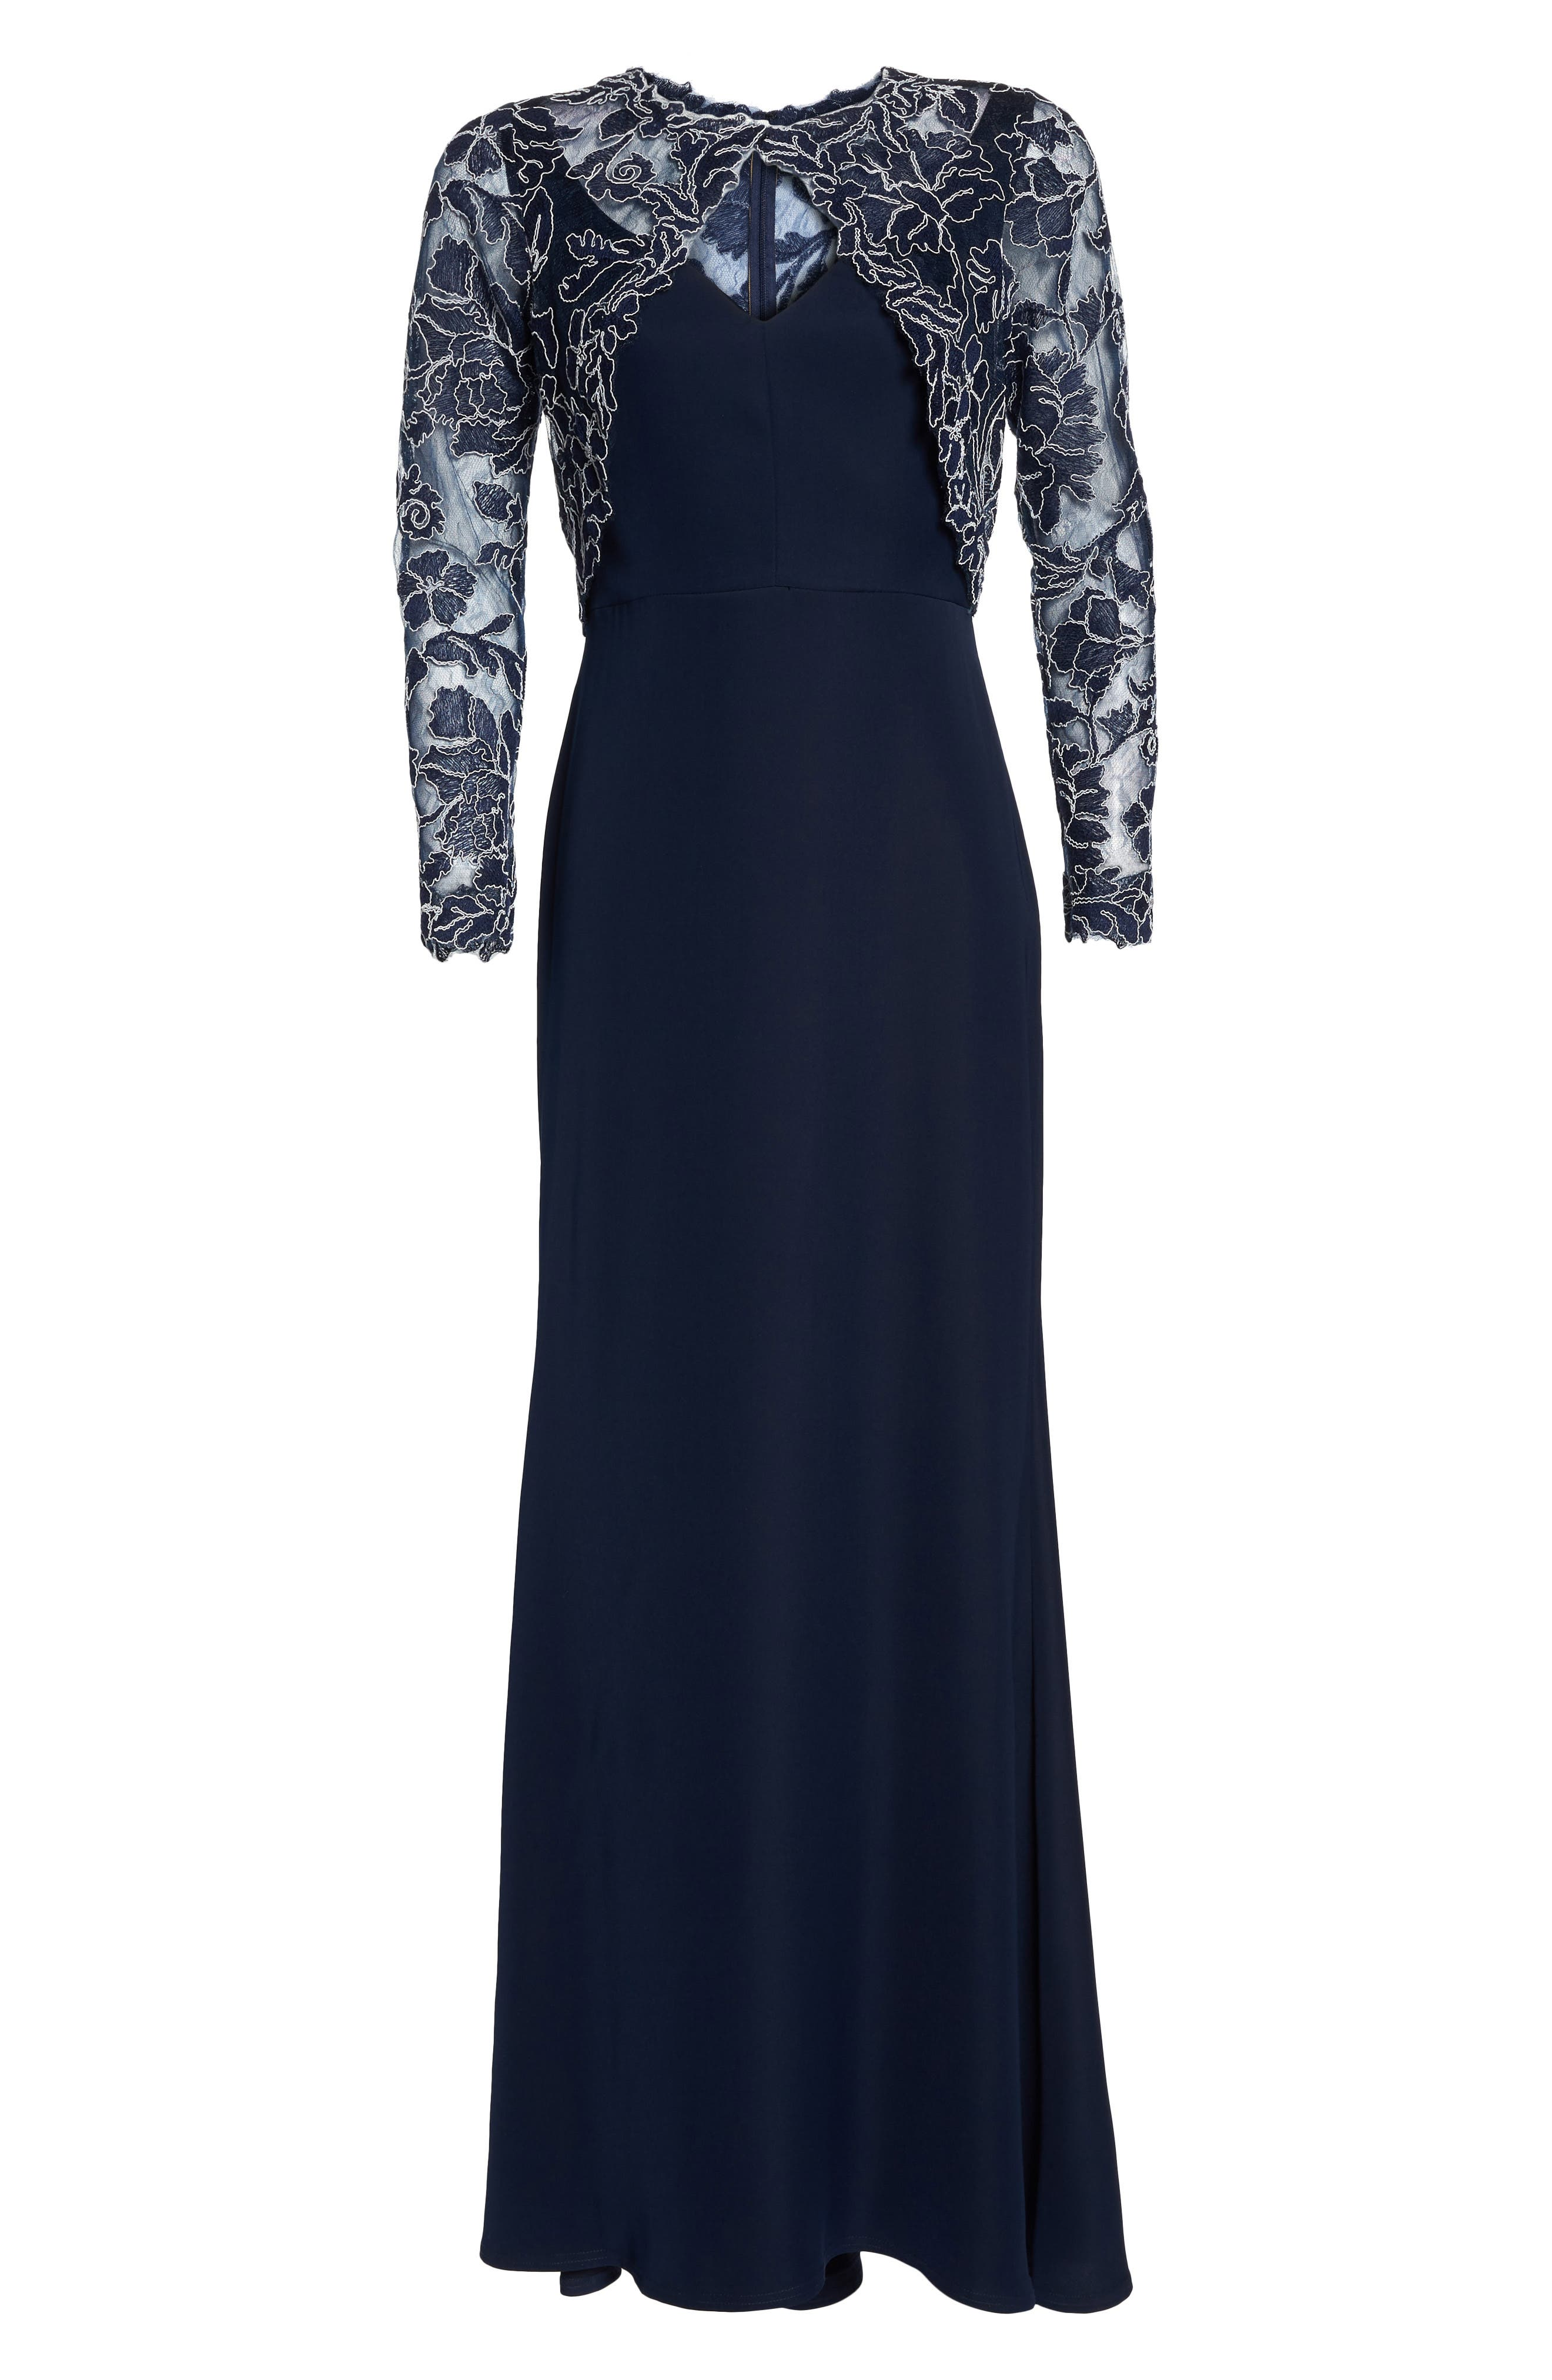 Crepe & Embroidered Lace Gown,                             Alternate thumbnail 6, color,                             Navy/ Ivory